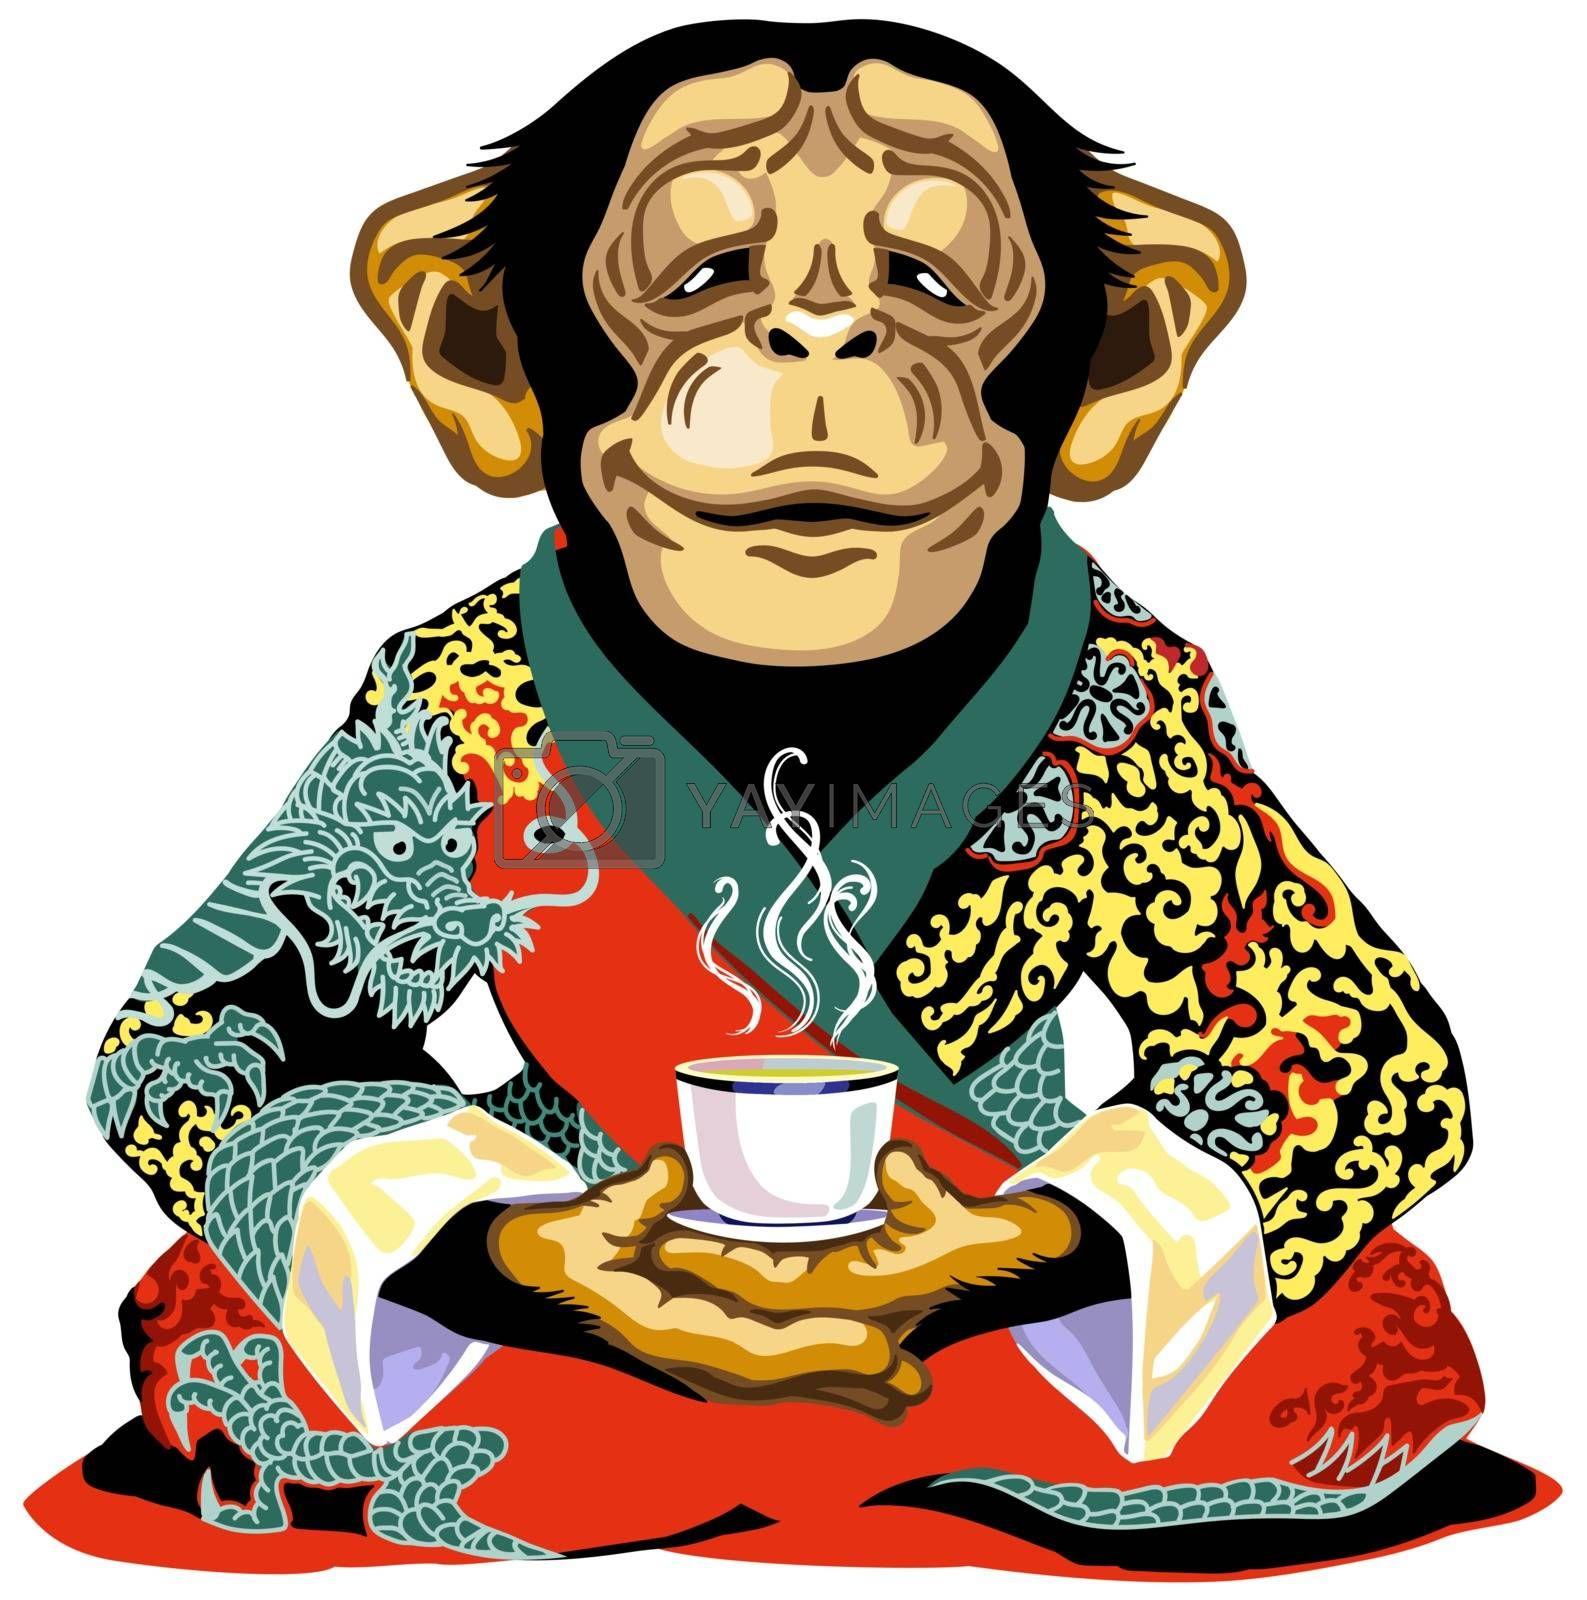 cartoon chimpanzee great ape or chimp monkey wearing red kimono robe, sitting in lotus yoga pose and holding a cup of tea. Meditating calm and peaceful emotion. Front view. Isolated vector illustration